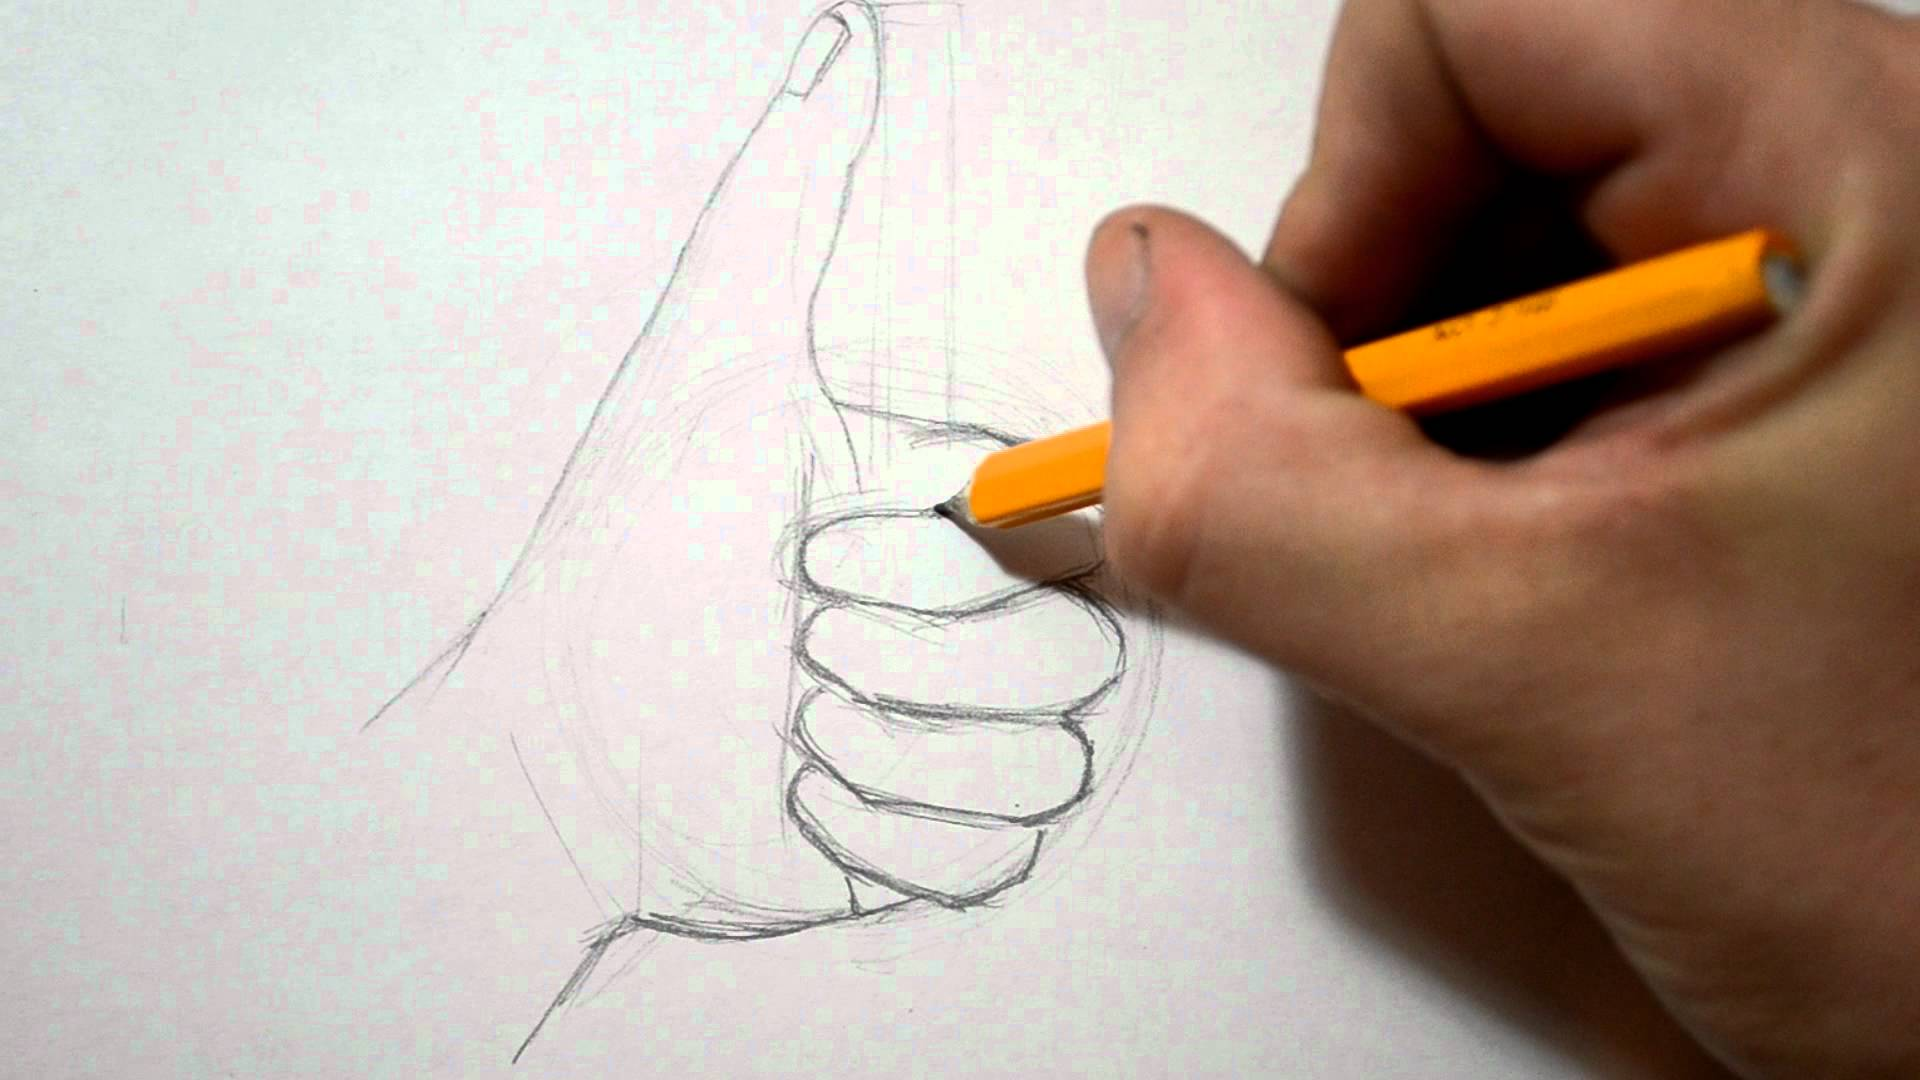 Drawn peace sign hand drawing How YouTube Up Thumbs Hand